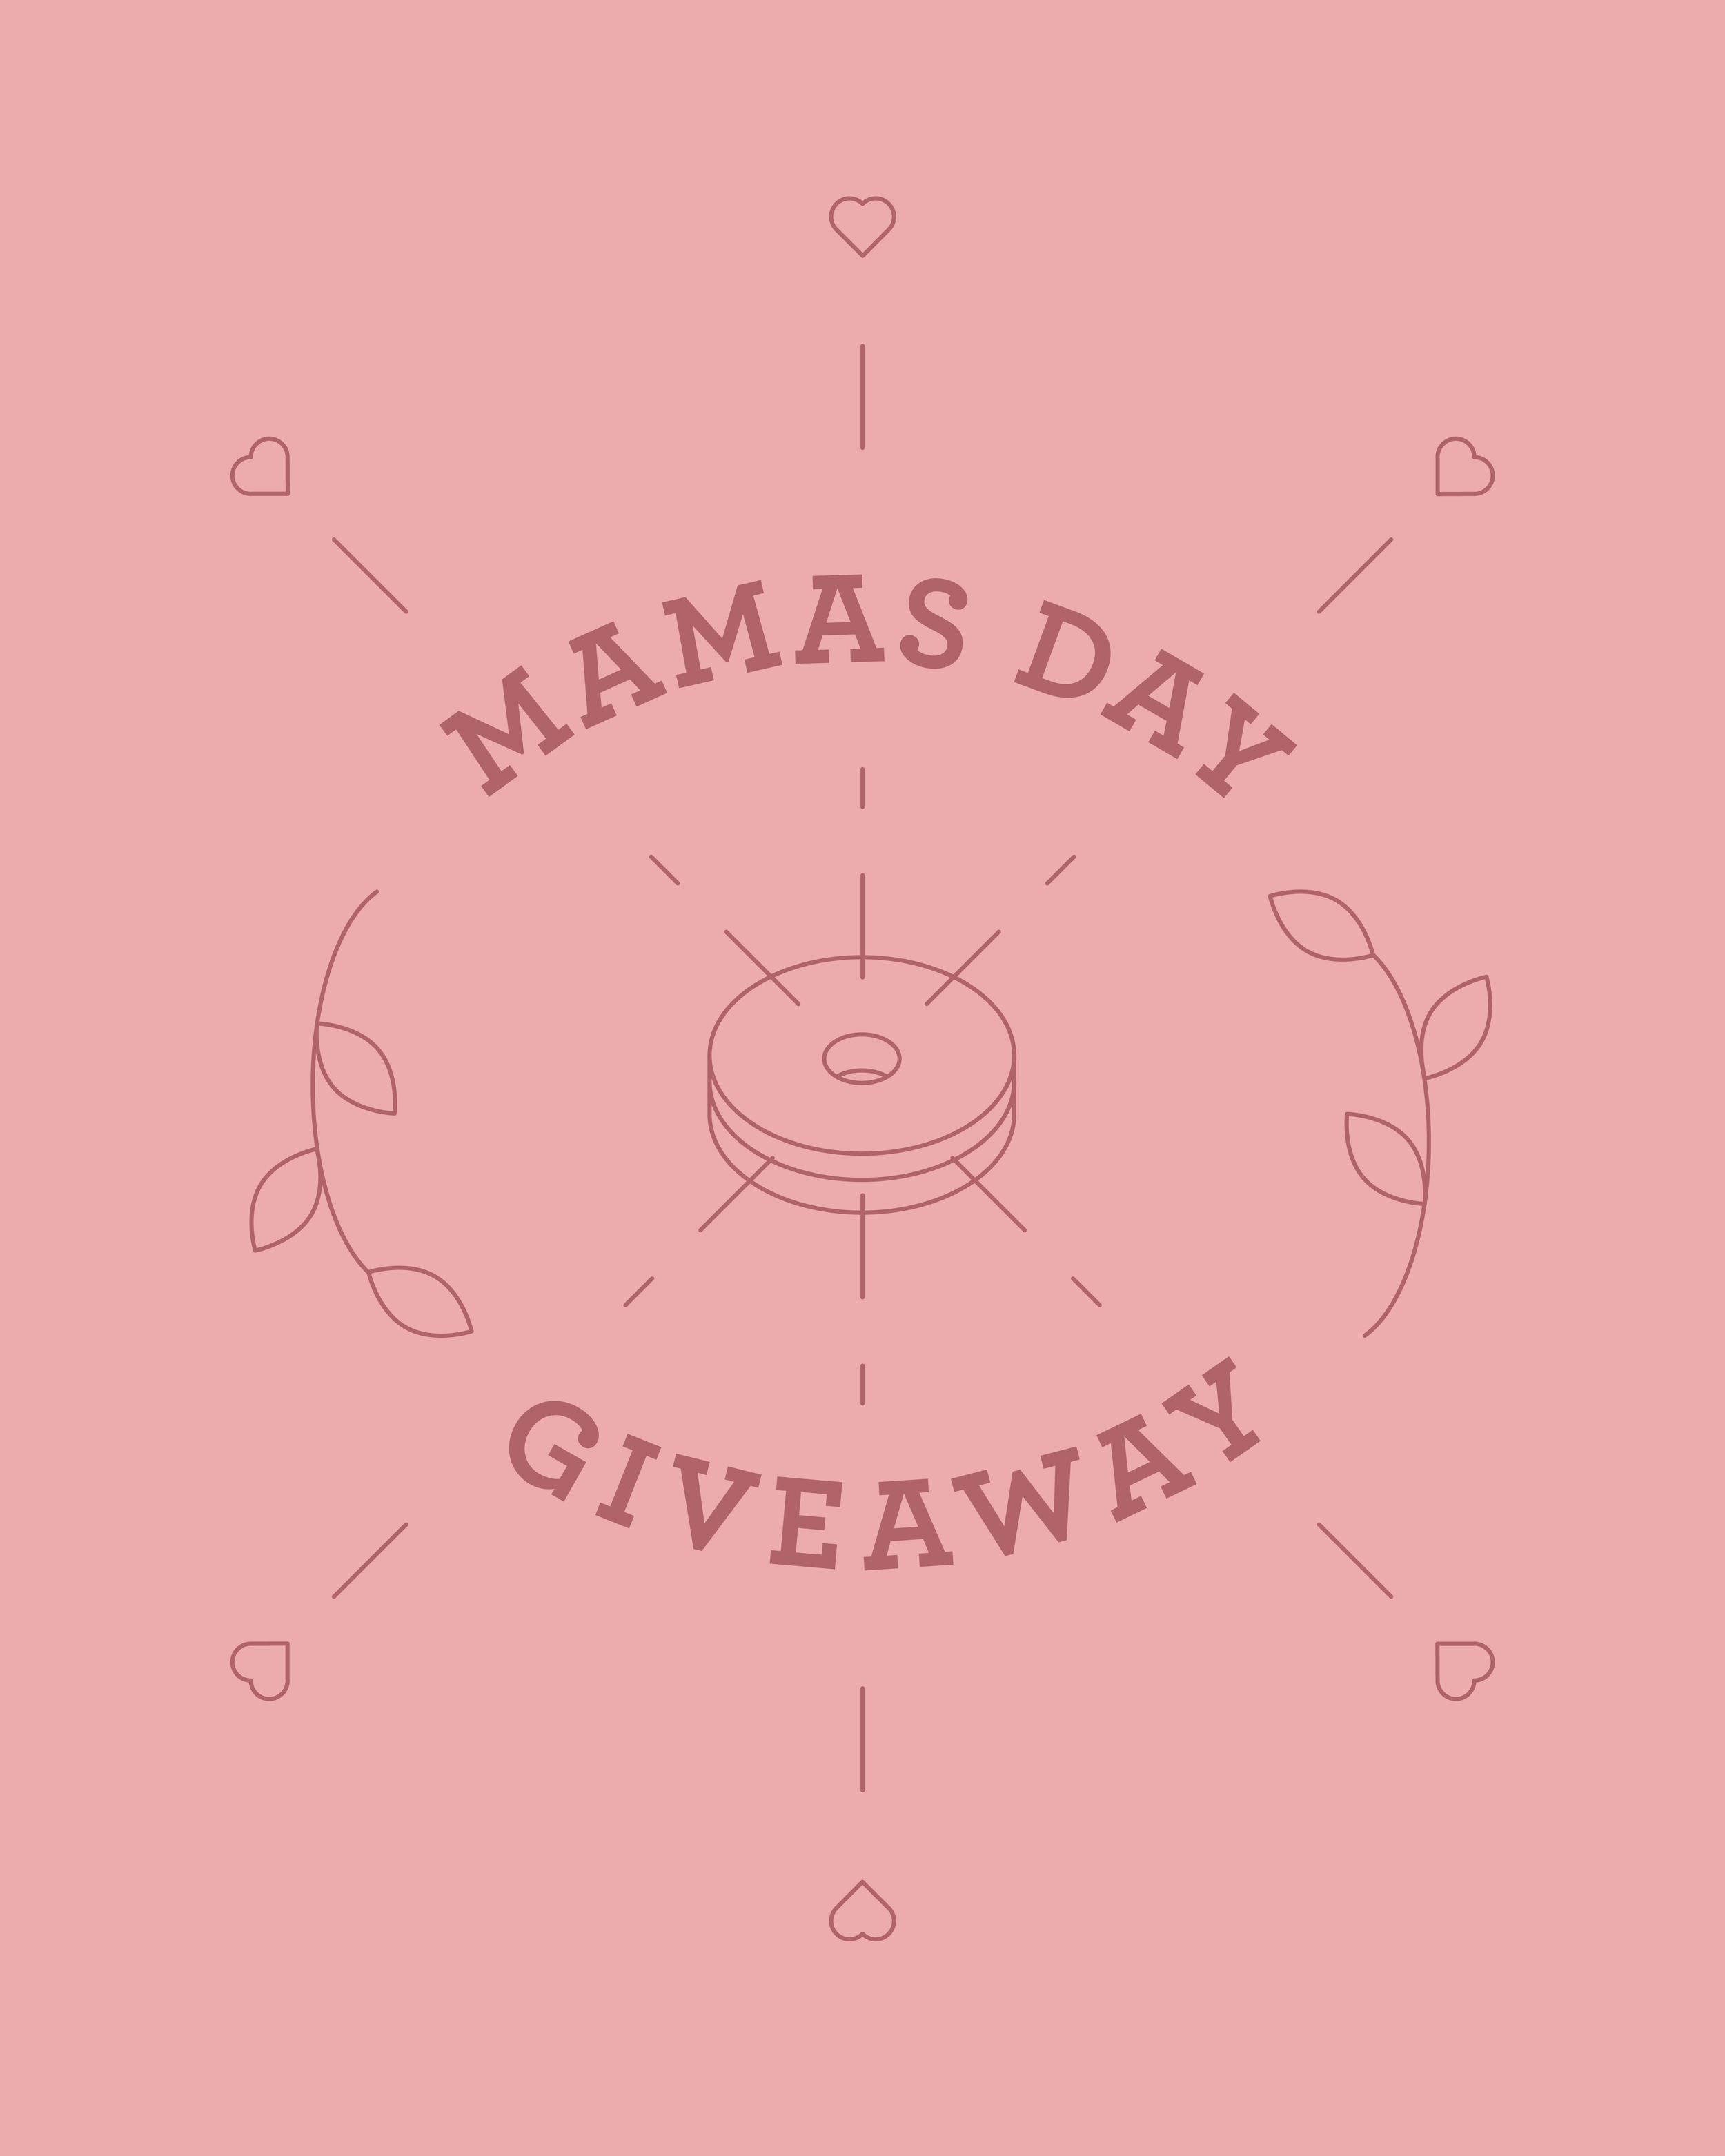 Mamas Day Competition Image.png